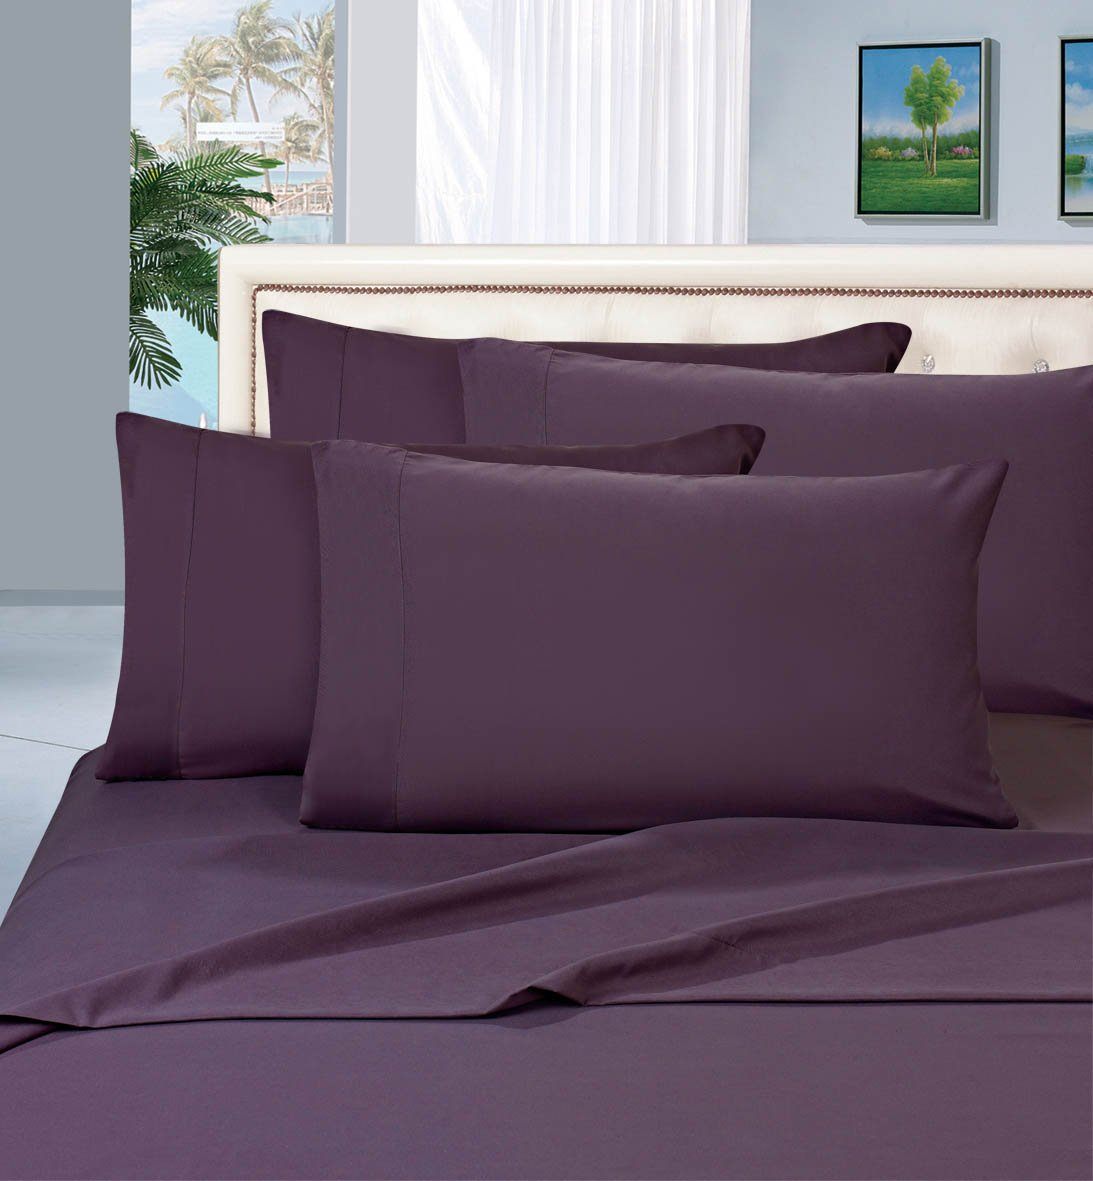 Eggplant bedding sets sale ease bedding with style for How to buy soft sheets